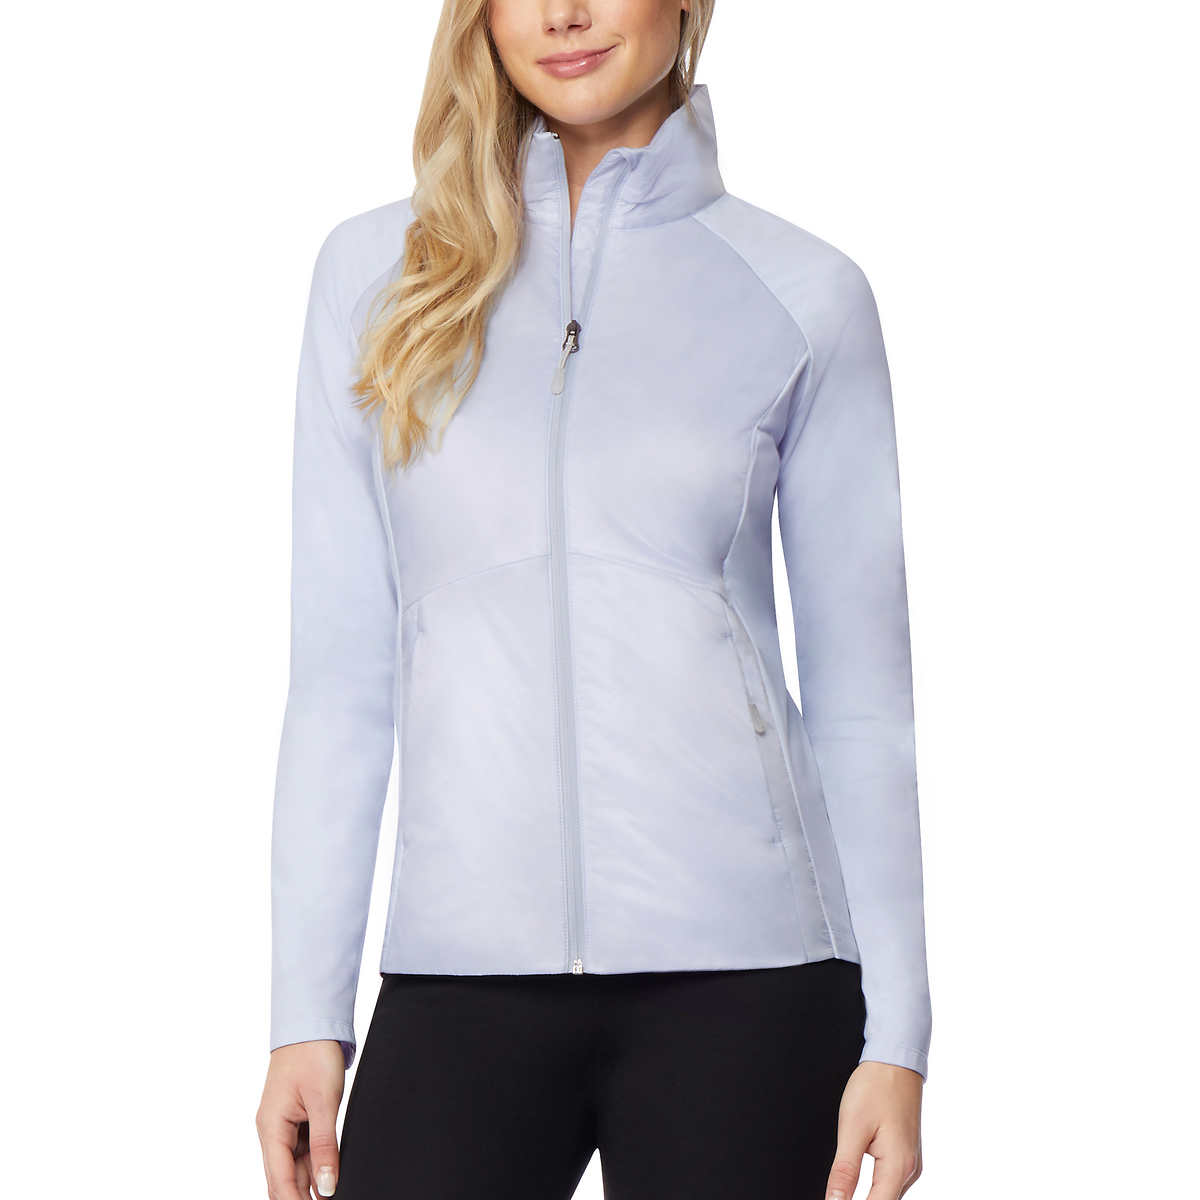 29157a7c1 32 Degrees Ladies' Lightweight Mixed Media Jacket